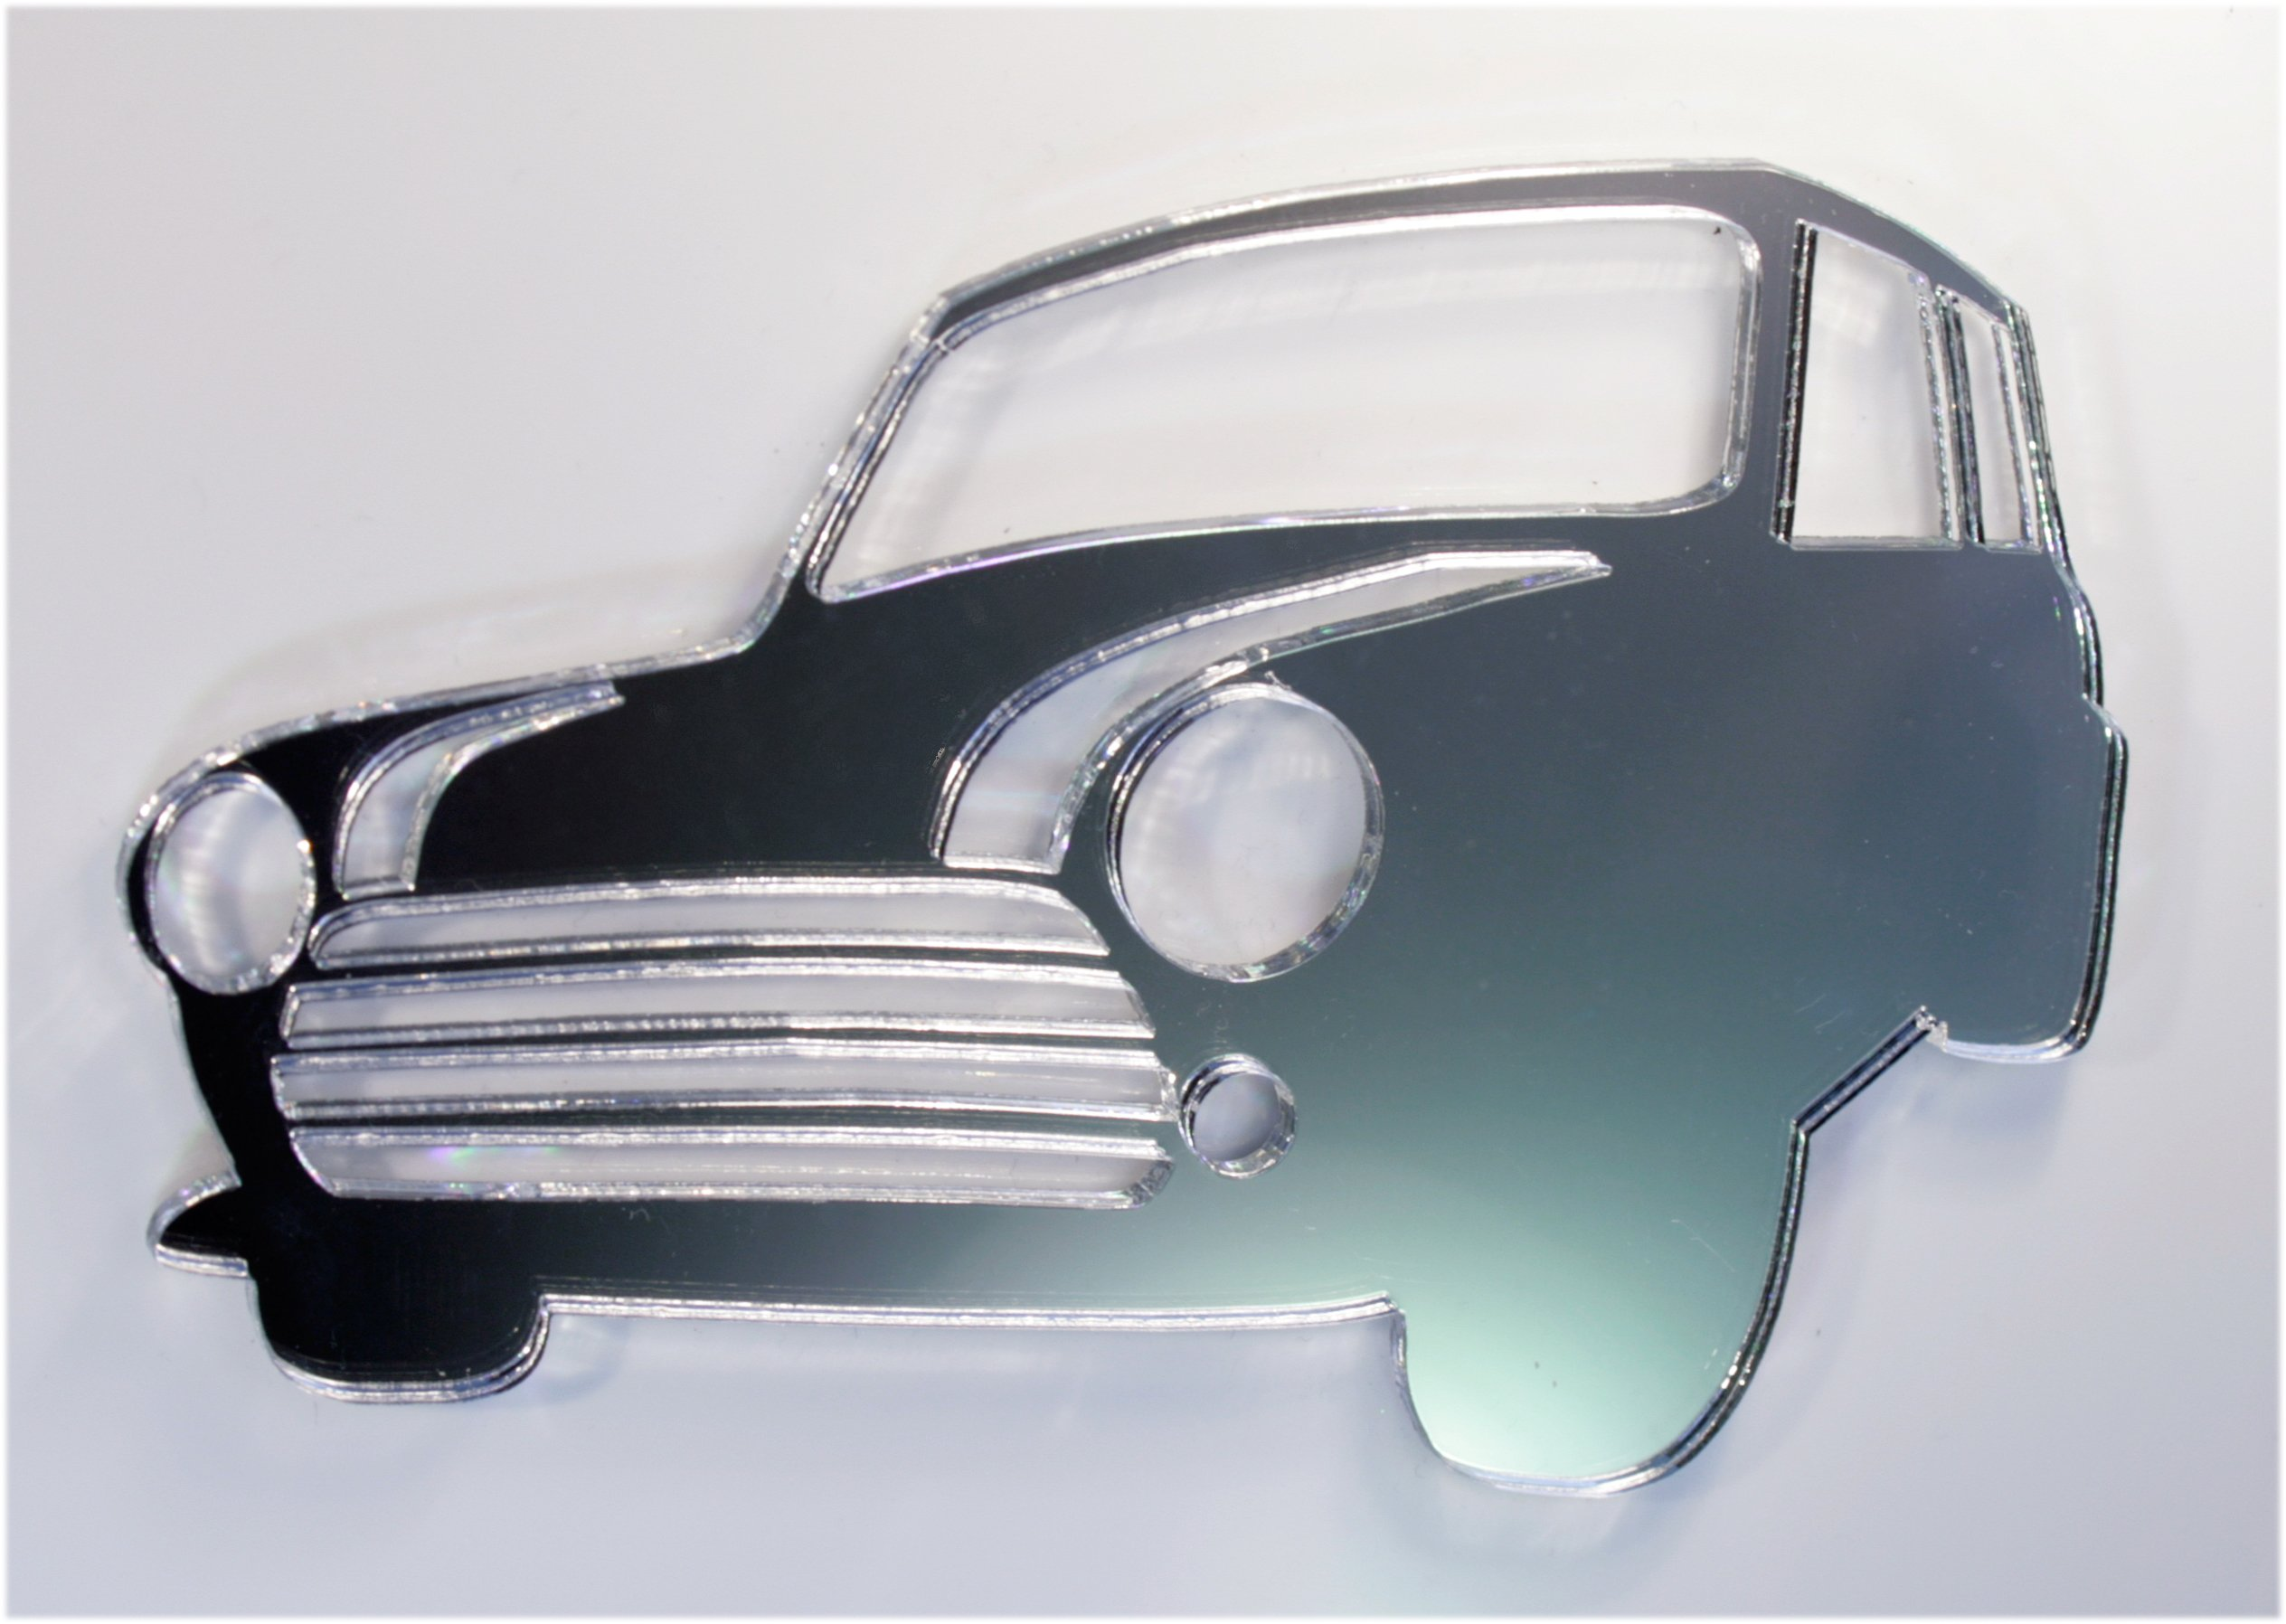 Car Mirror - Available in various sizes, including sets for crafting kits - 20cm x 13cm